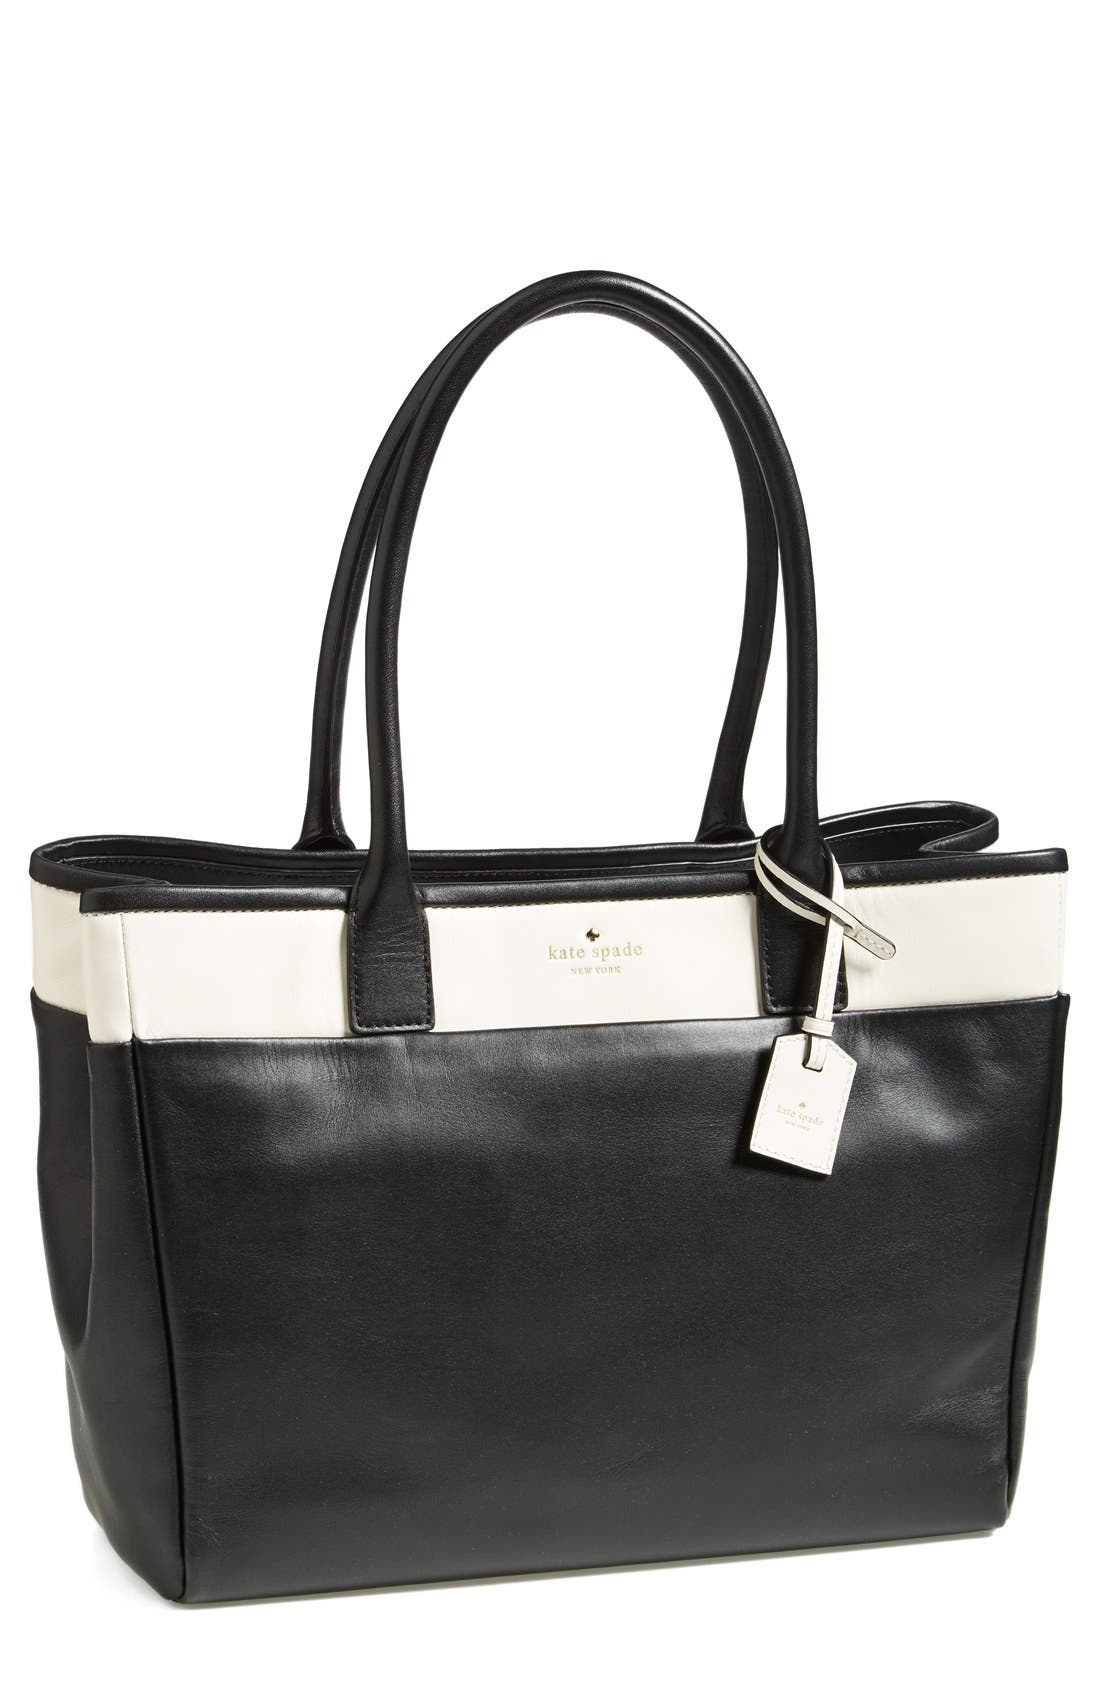 Alternate Image 1 Selected - kate spade new york 'branton square - healy' tote (Nordstrom Exclusive)